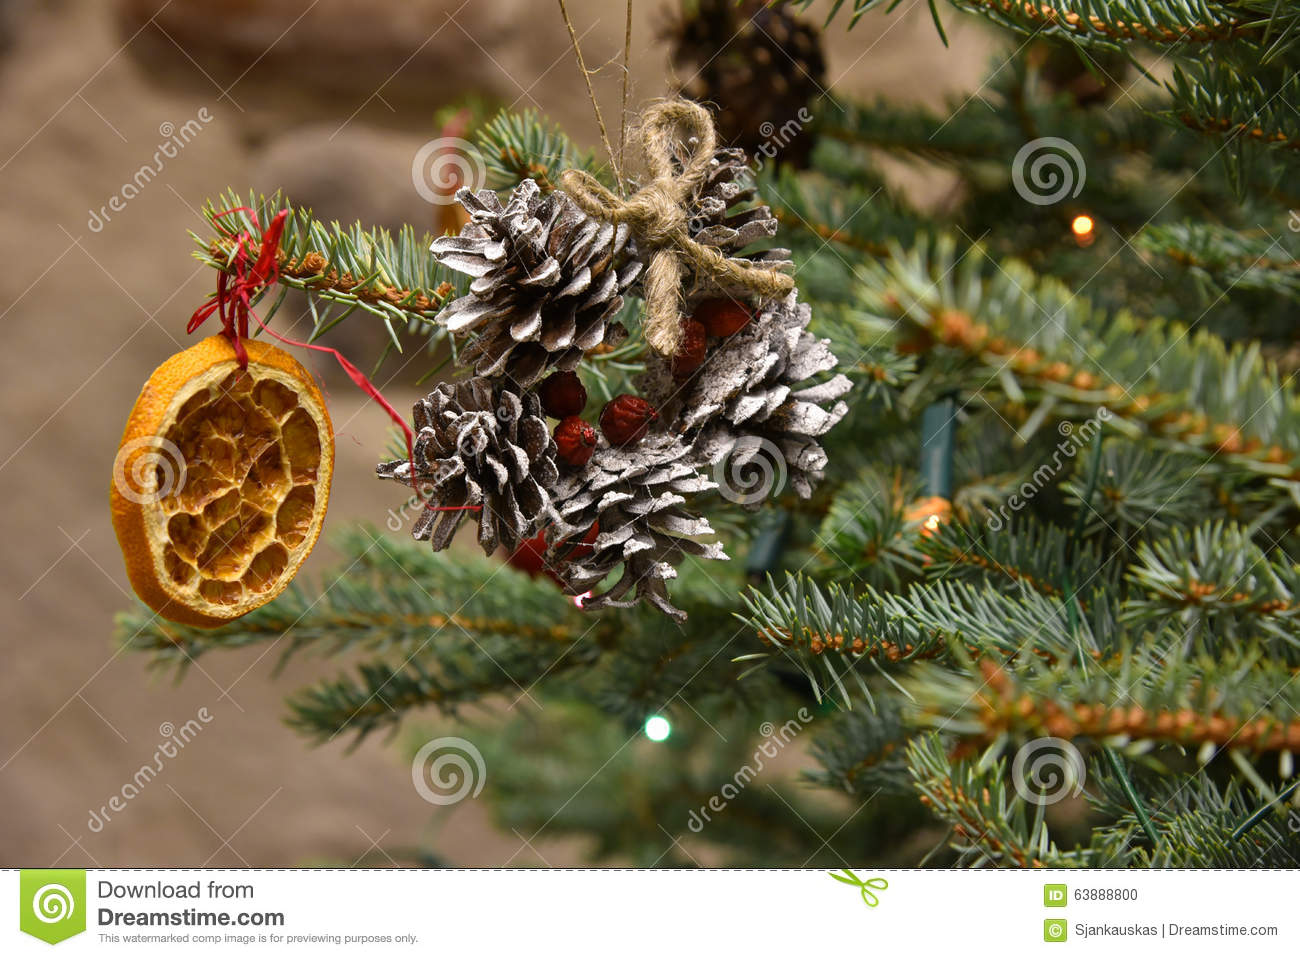 Natural Christmas Tree Decorations Stock Photo Image Of Rustic Celebration 63888800